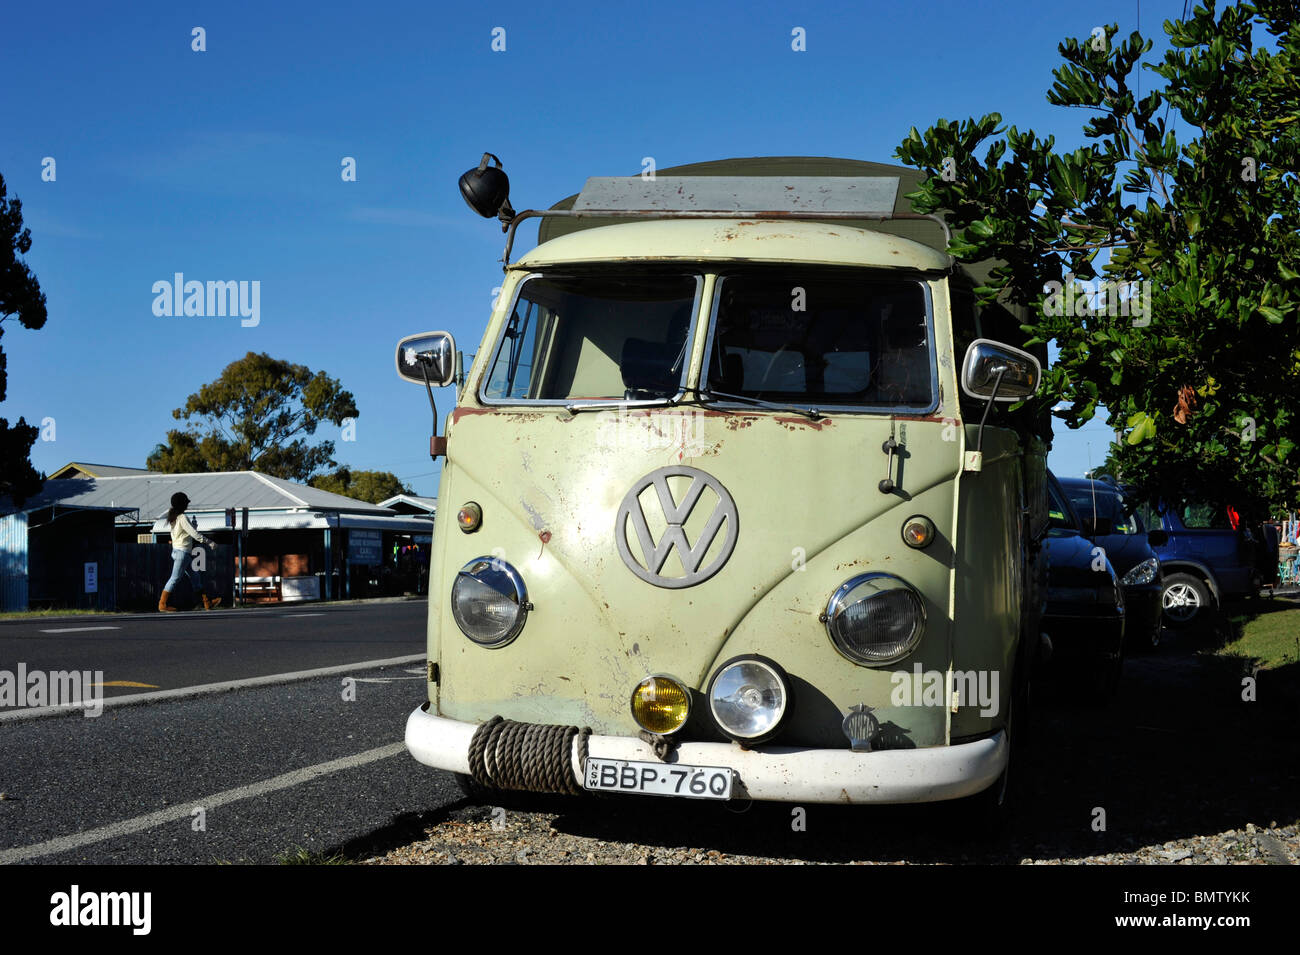 VW Kombi - Stock Image